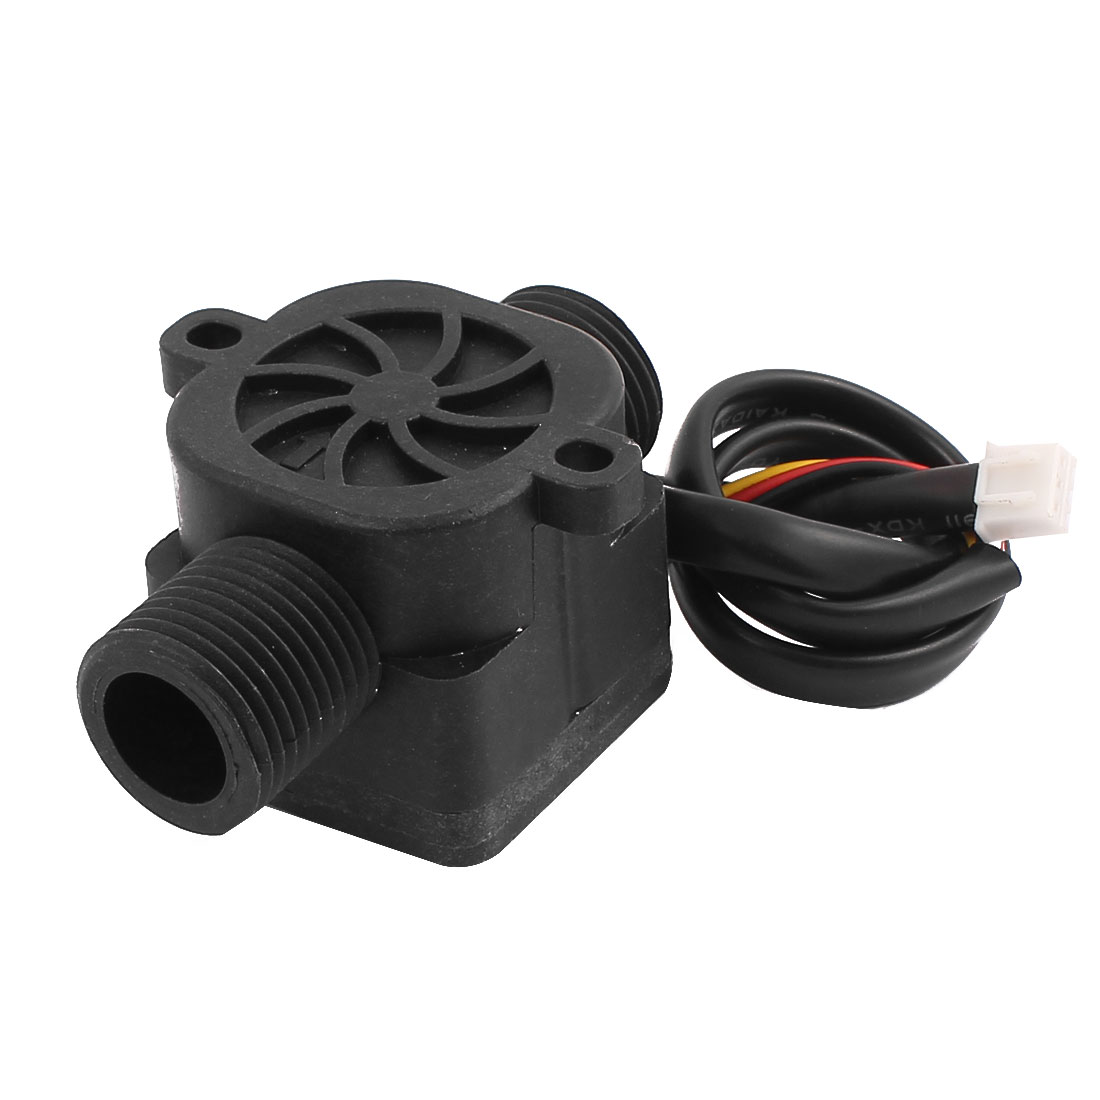 SEN-HZ21WB G1/2 Male Thread Plastic Hall Water Flow Sensor 1-30L/min 65mm